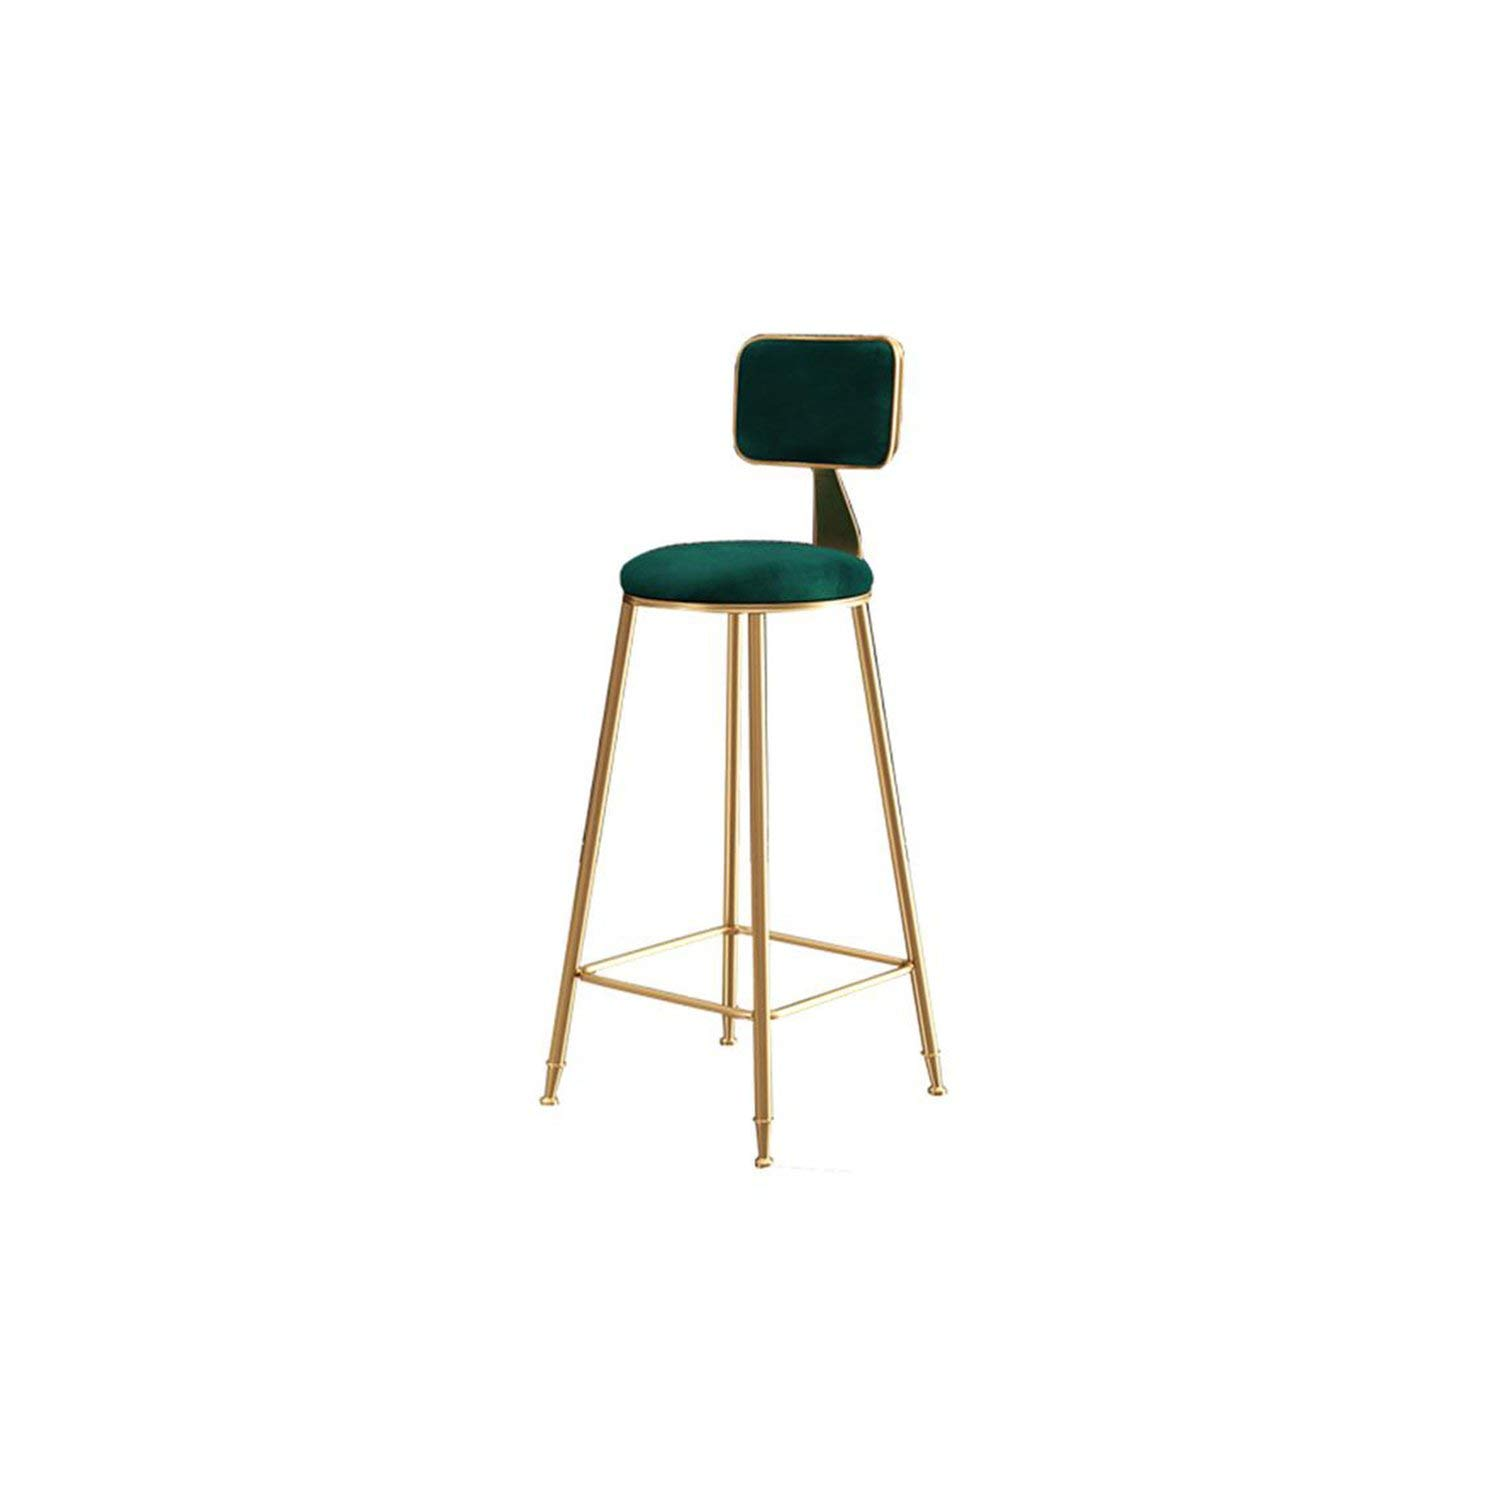 75cm Style14 tthappy76 Nordic Wrought Iron Bar Stool Modern Minimalist Home Backrest Dining Chair High Stool Cafe Bar Stool Bar Stool,65Cm Style19